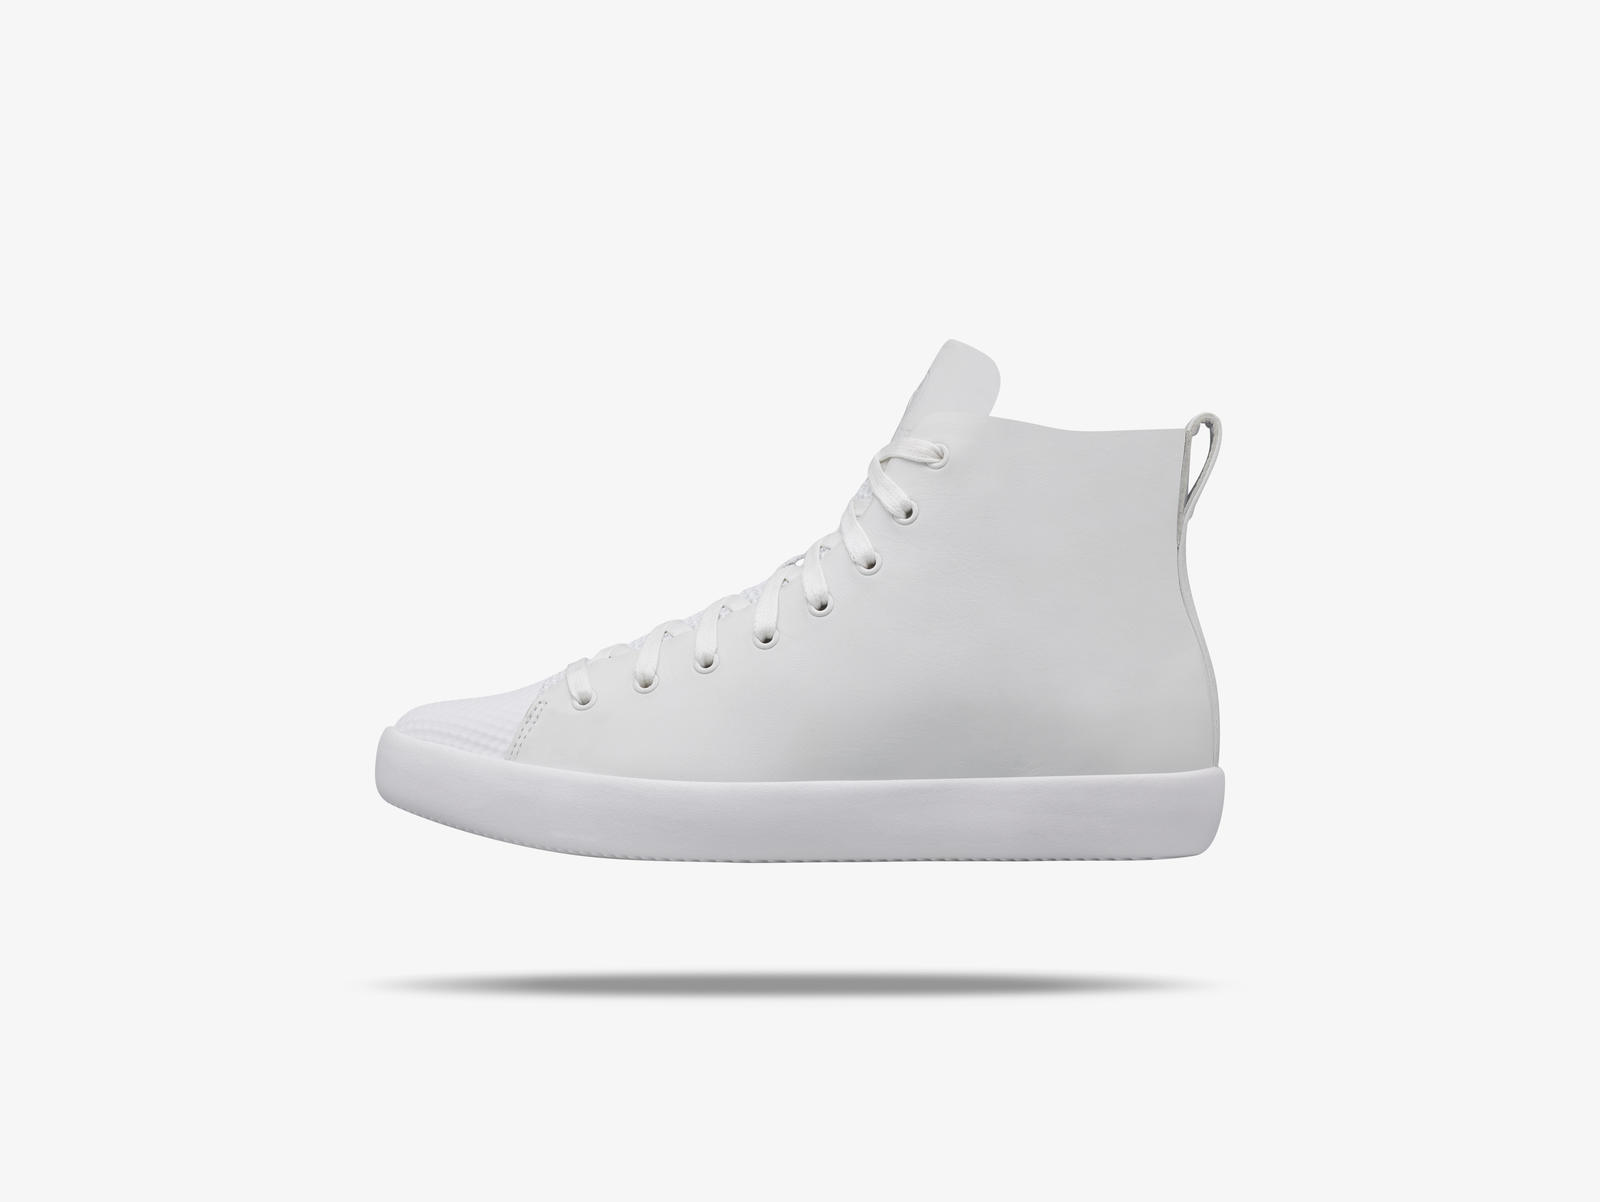 converse all star hi all white colorway a262e4d22